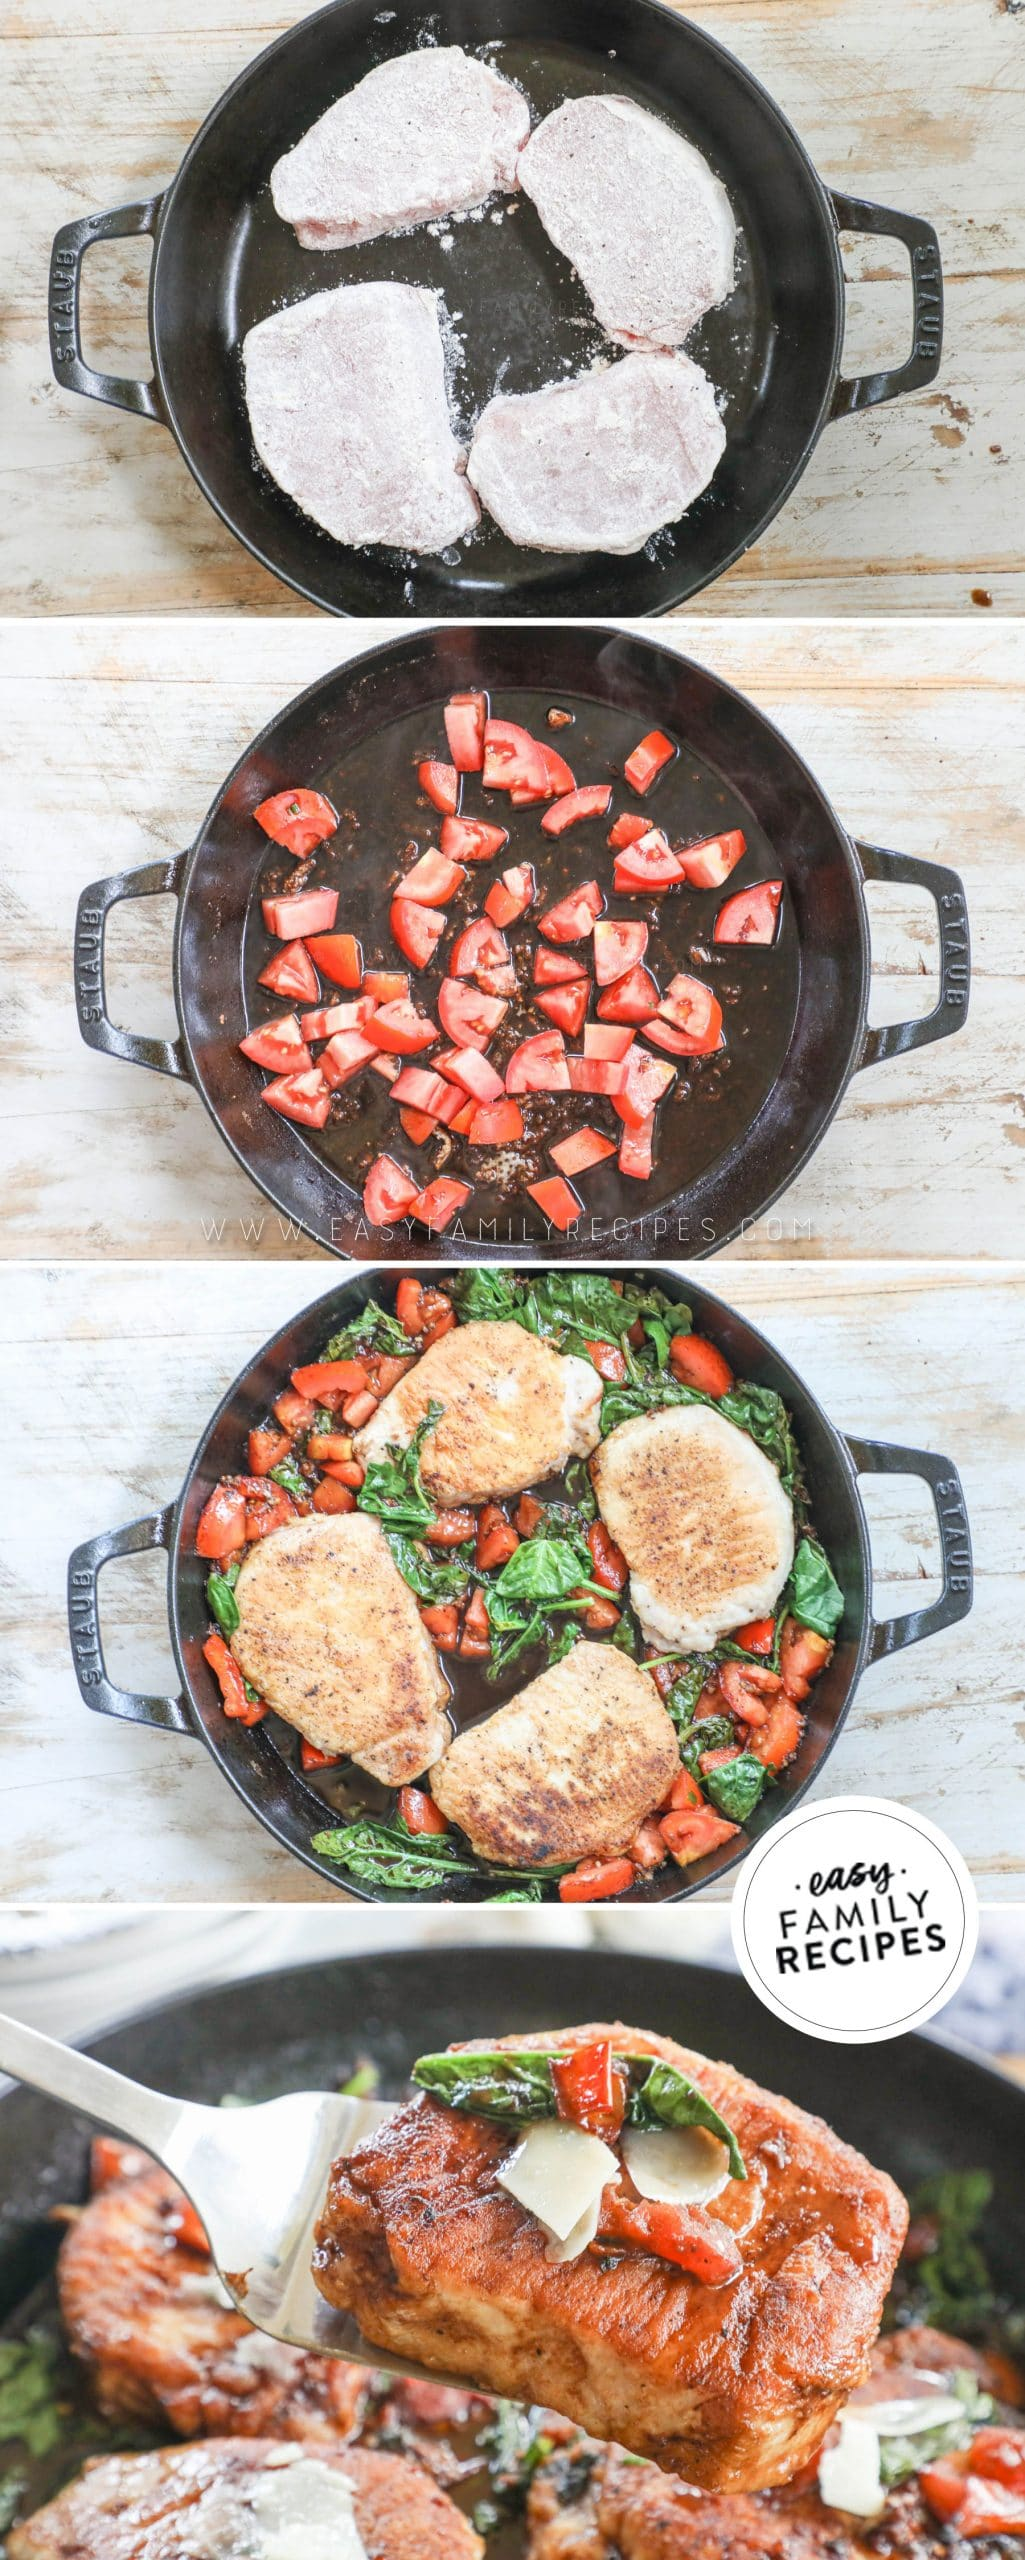 Process photos for How to make Tuscan Pork Chops 1. Dredge Pork Chops in flour and pan fry. 2. Add tomatoes and balsamic vinegar to skillet and cook down. 3. add back in pork chops and spinach to finish cooking. 4. Serve garnished with parmesan cheese.